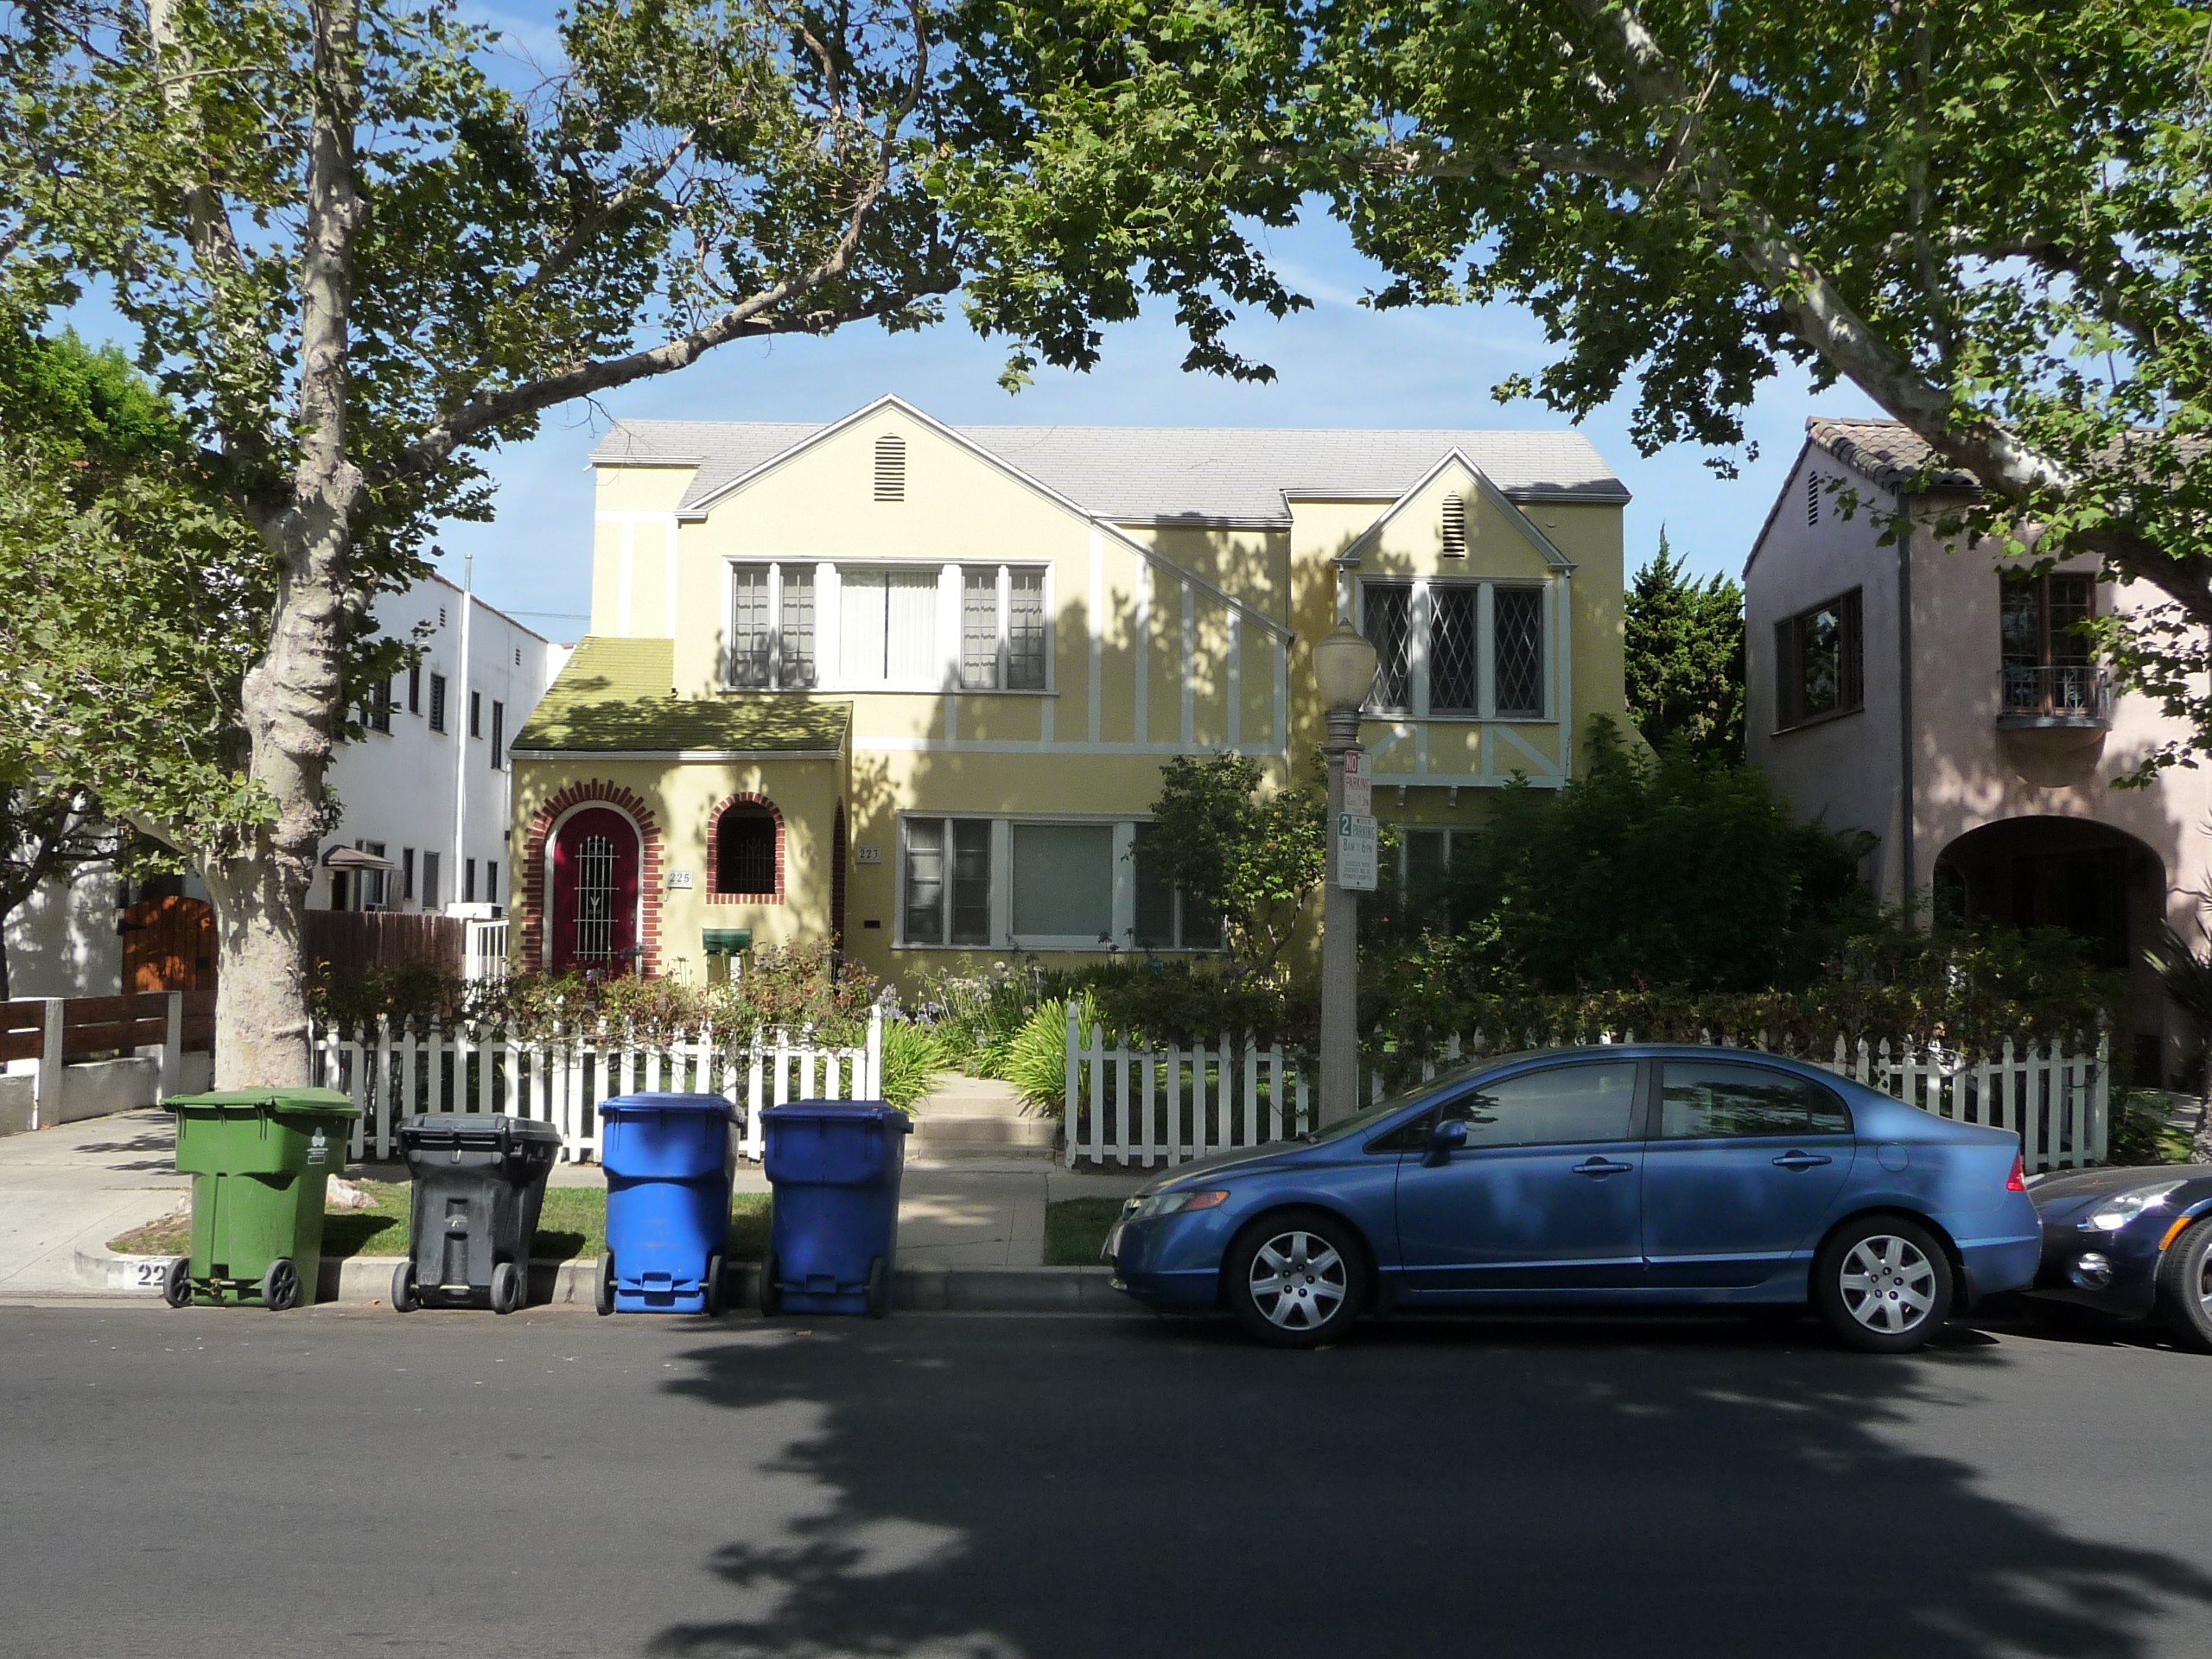 223 S MANSFIELD AVE - PHOTO